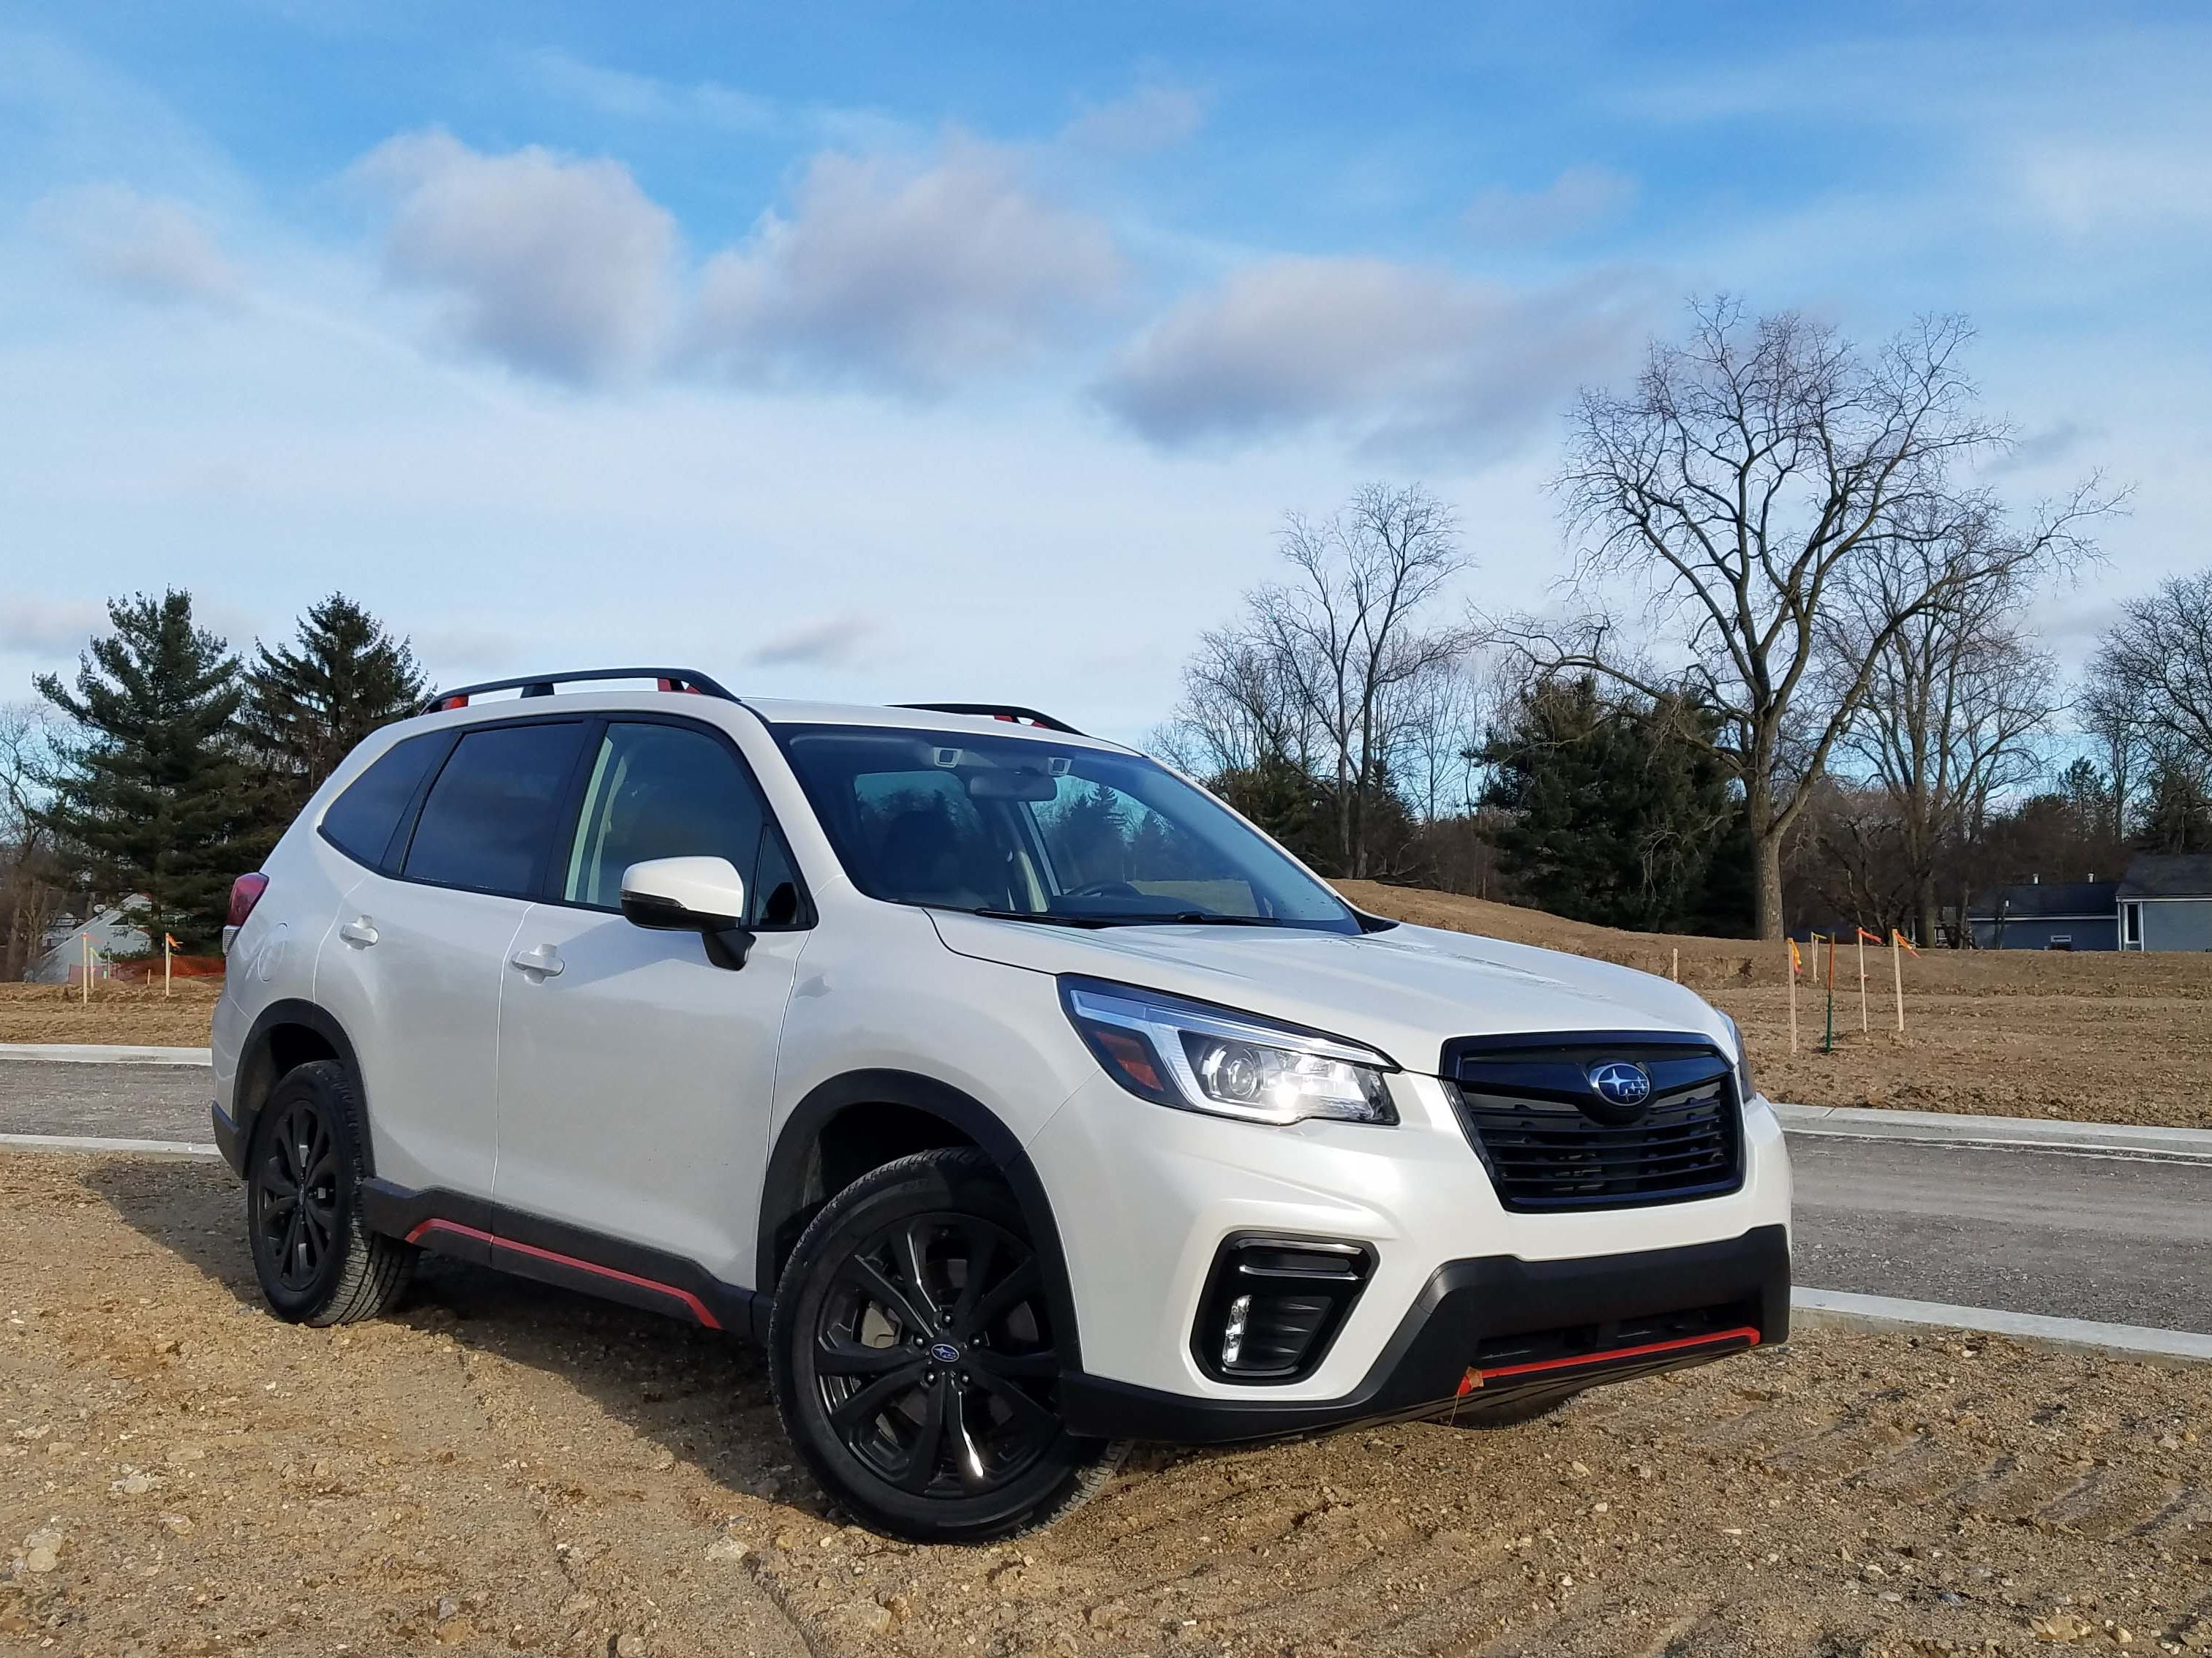 Happy on- and off-road. With multiple X-MODE settings for mud, road and snow, the Subaru Forester Sport is an eager, all-season auto.